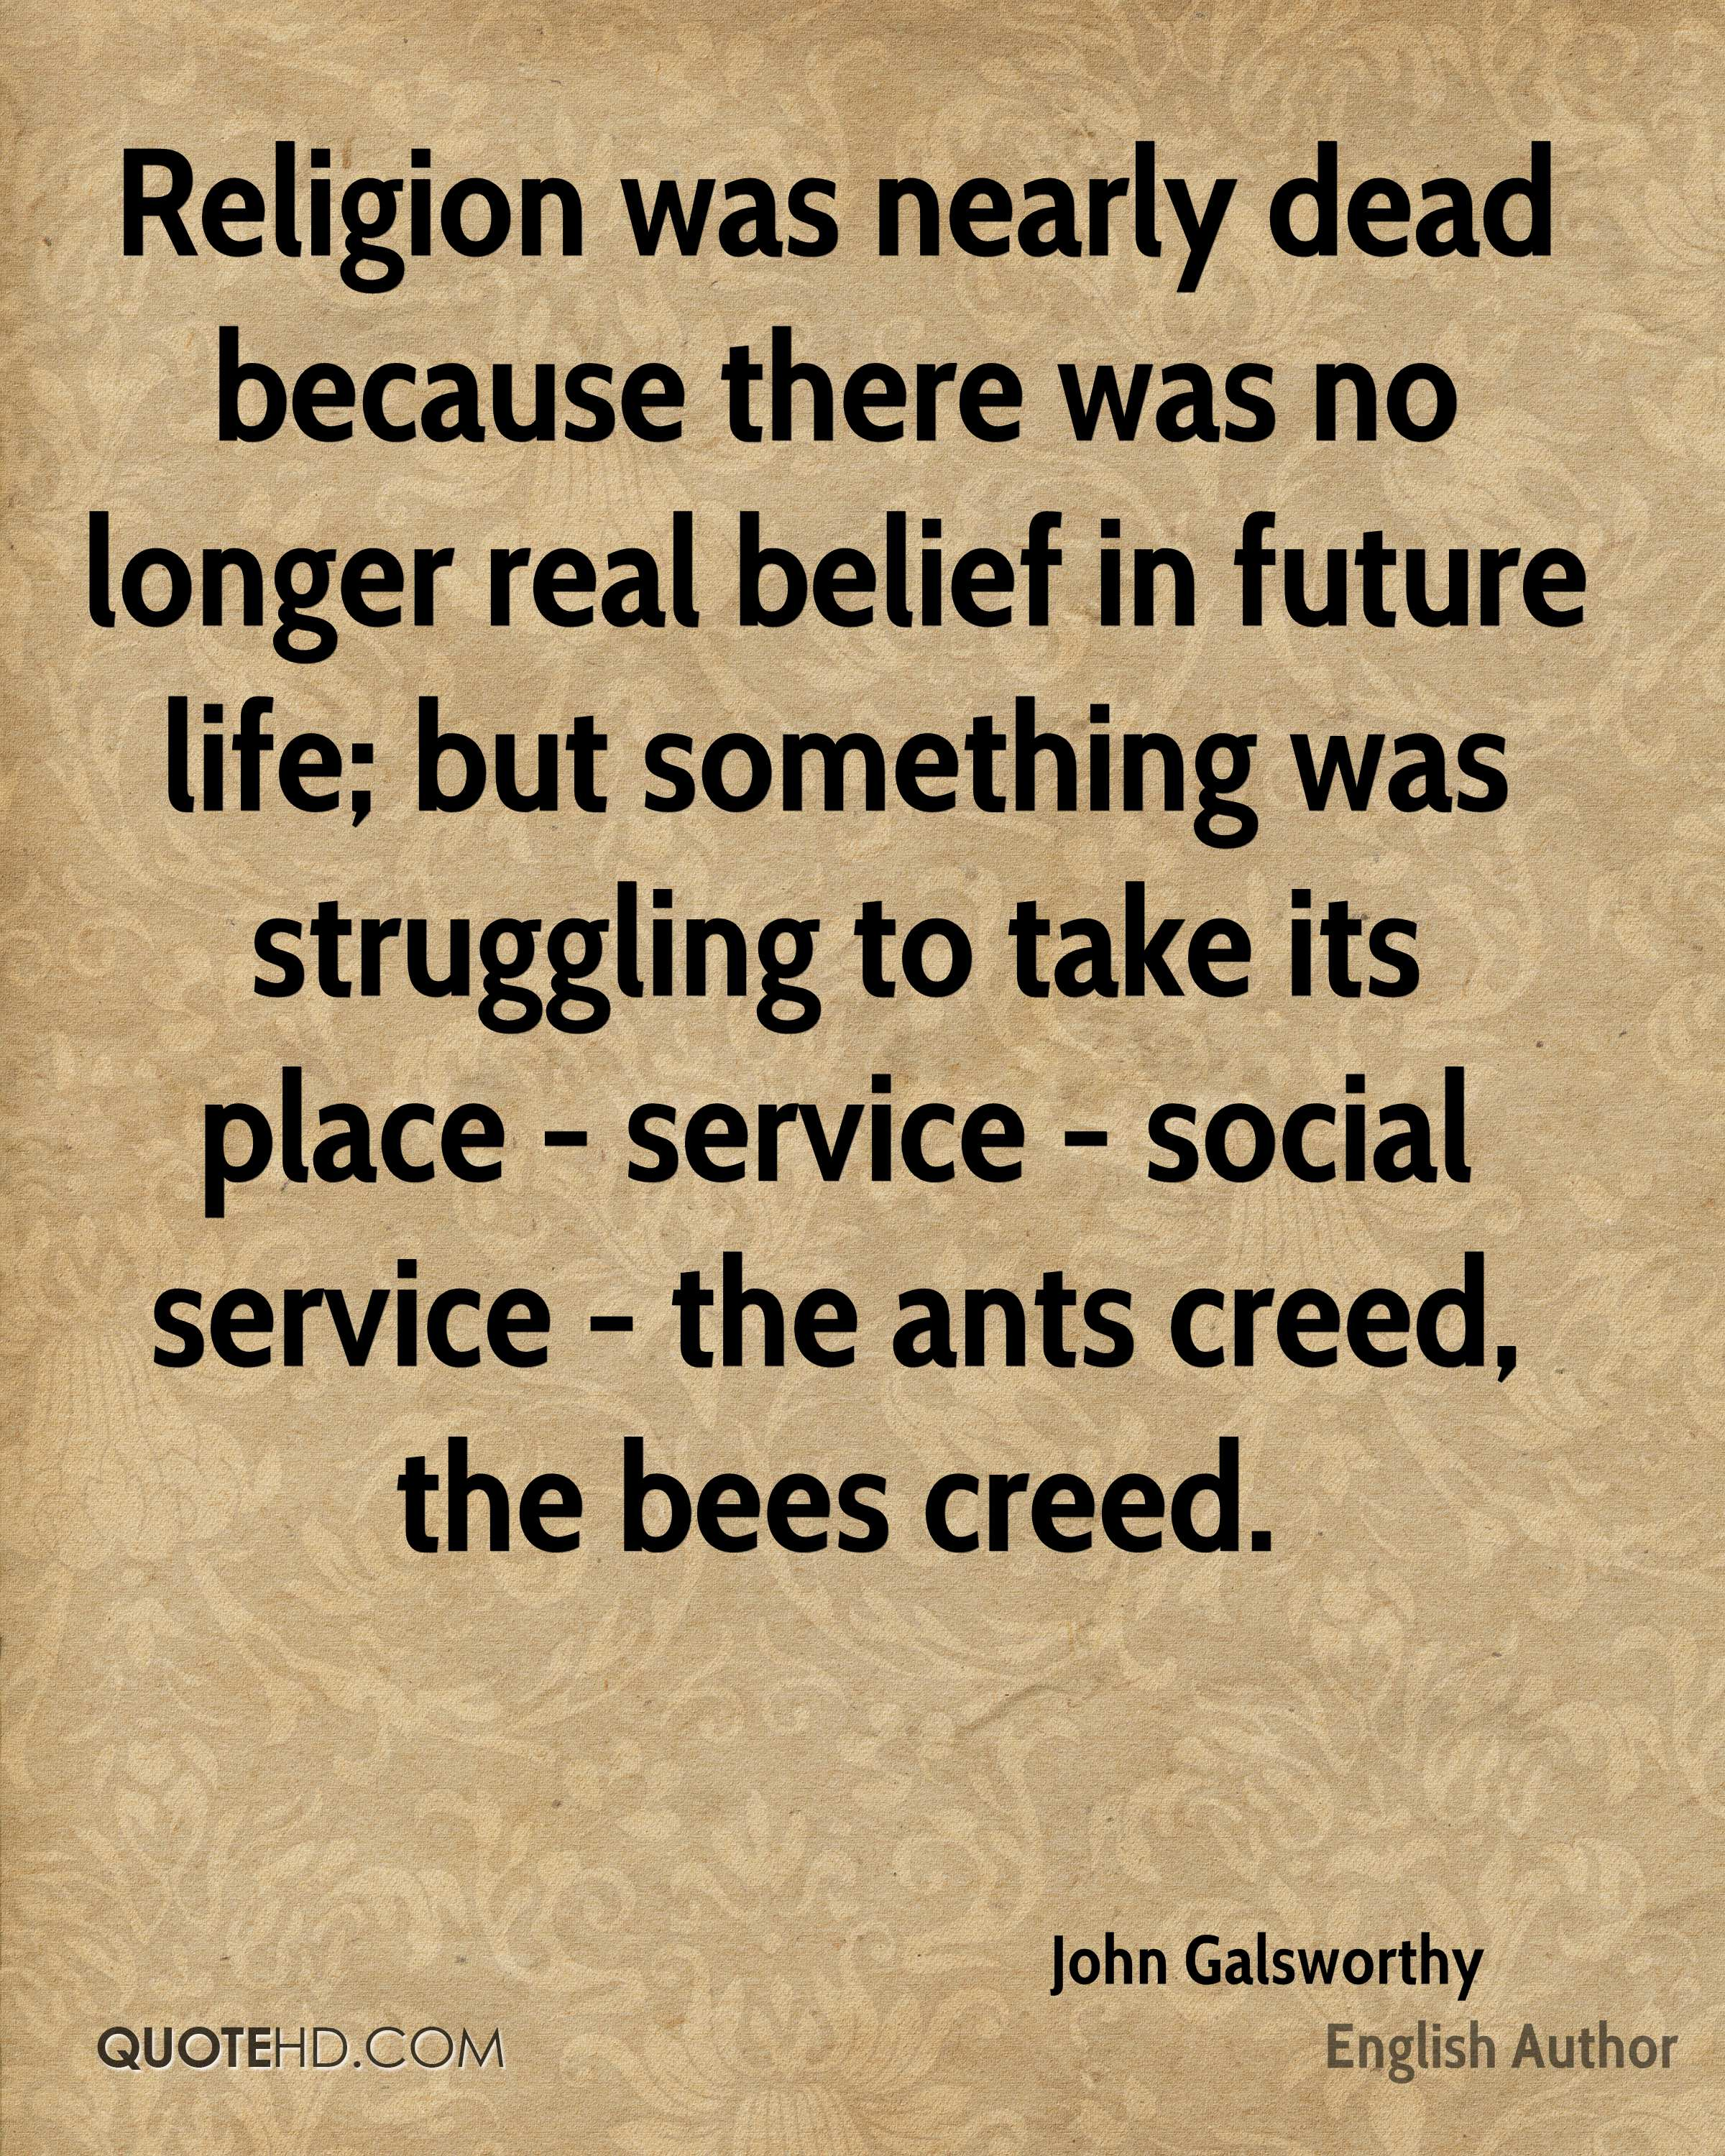 Religion was nearly dead because there was no longer real belief in future life; but something was struggling to take its place - service - social service - the ants creed, the bees creed.